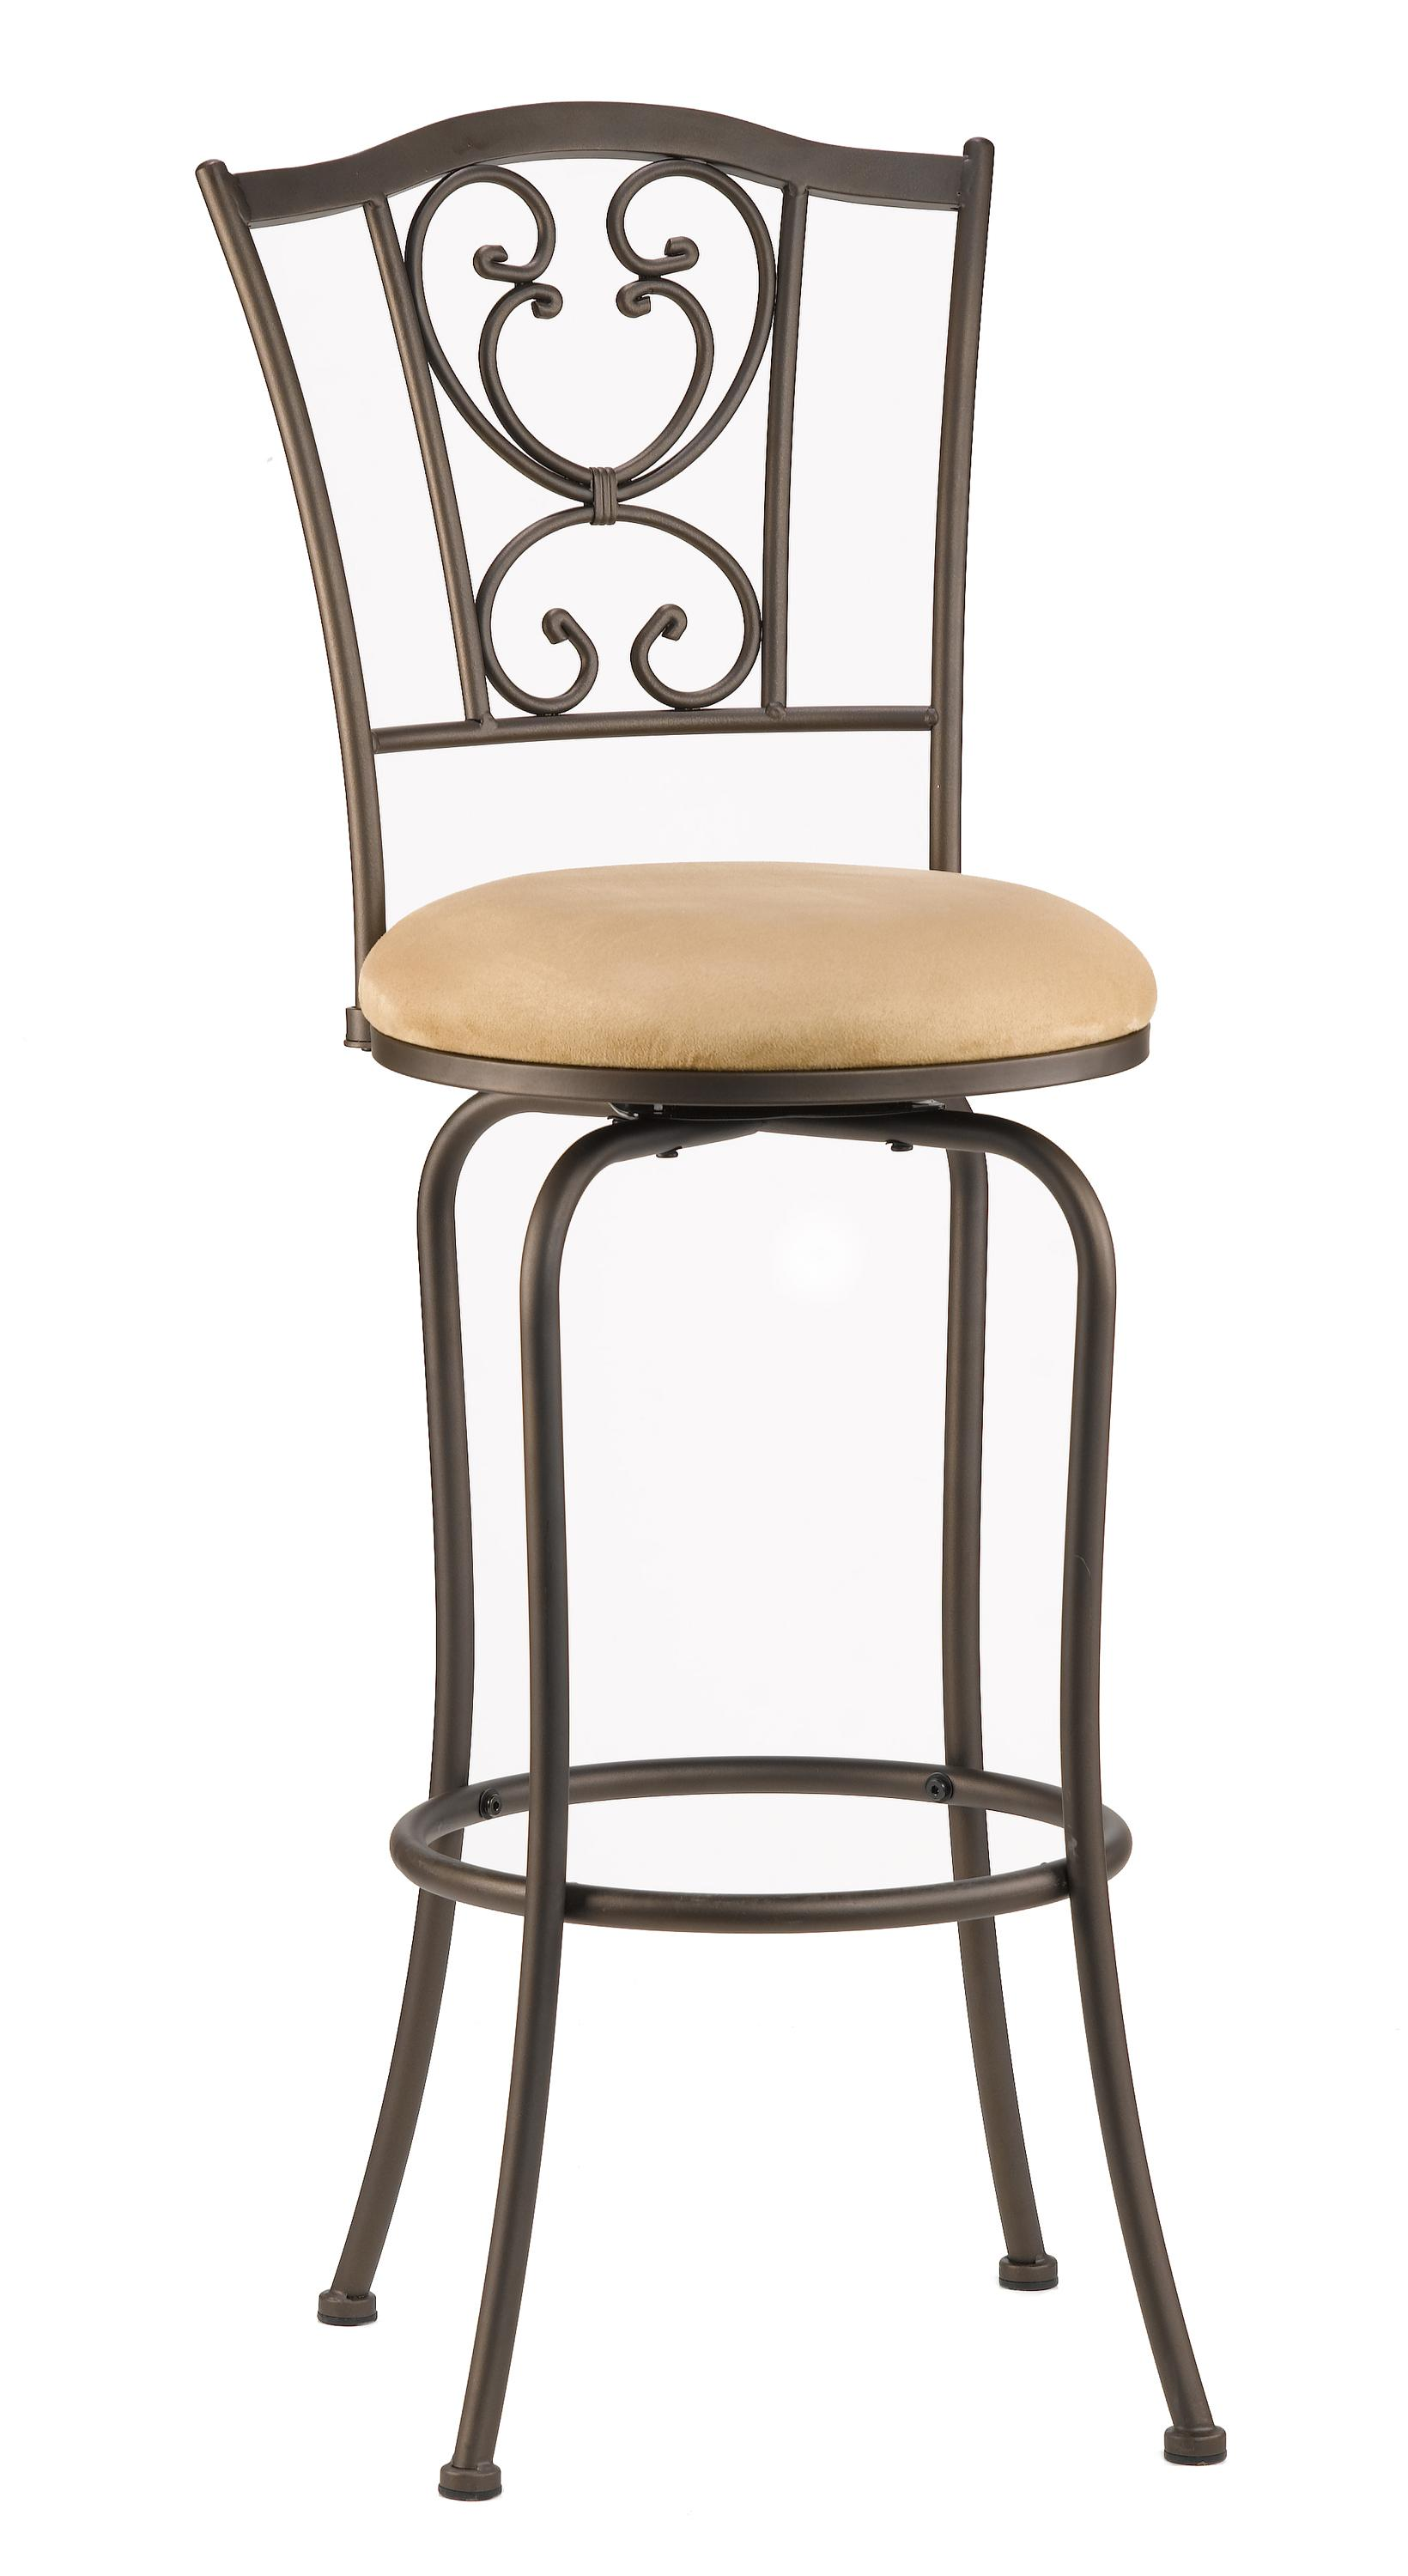 "Hillsdale Metal Stools 30"" Bar Height Concord Swivel Stool - Item Number: 4120-831"